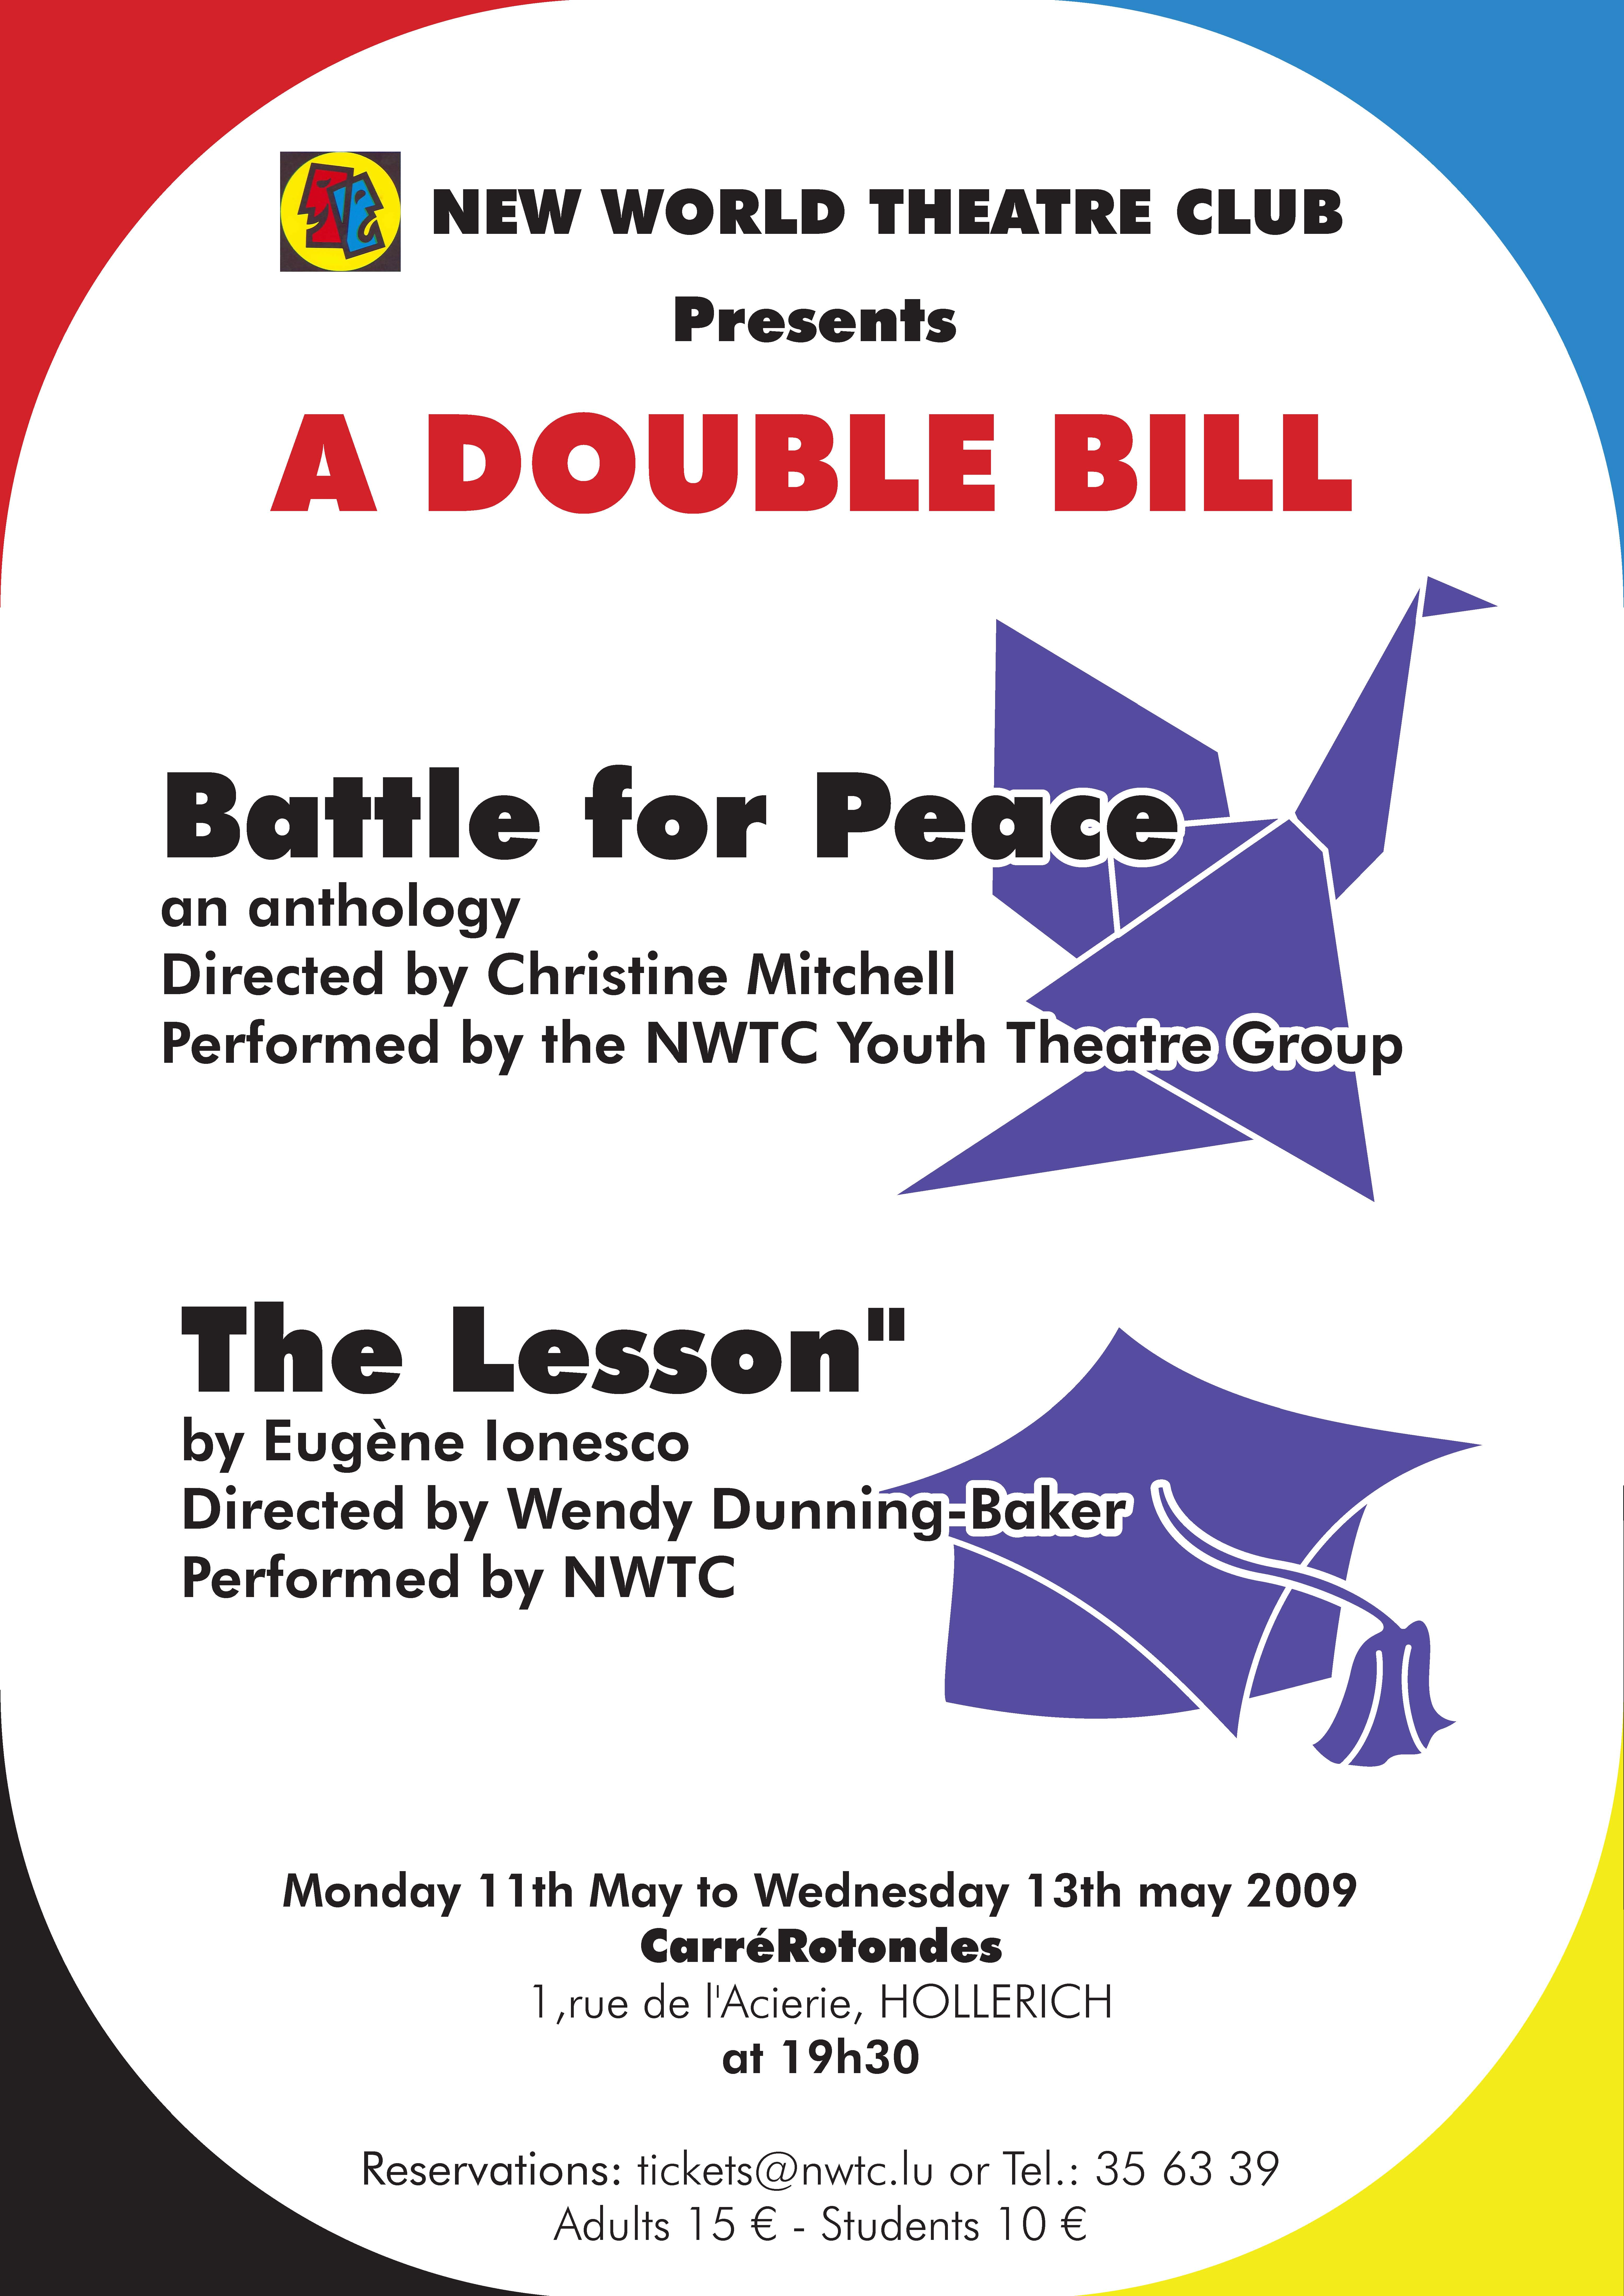 https://www.nwtc.lu/media/Show_Archives/2009 FEATS DOUBLE BILL/ADoubleBill_V01.jpg